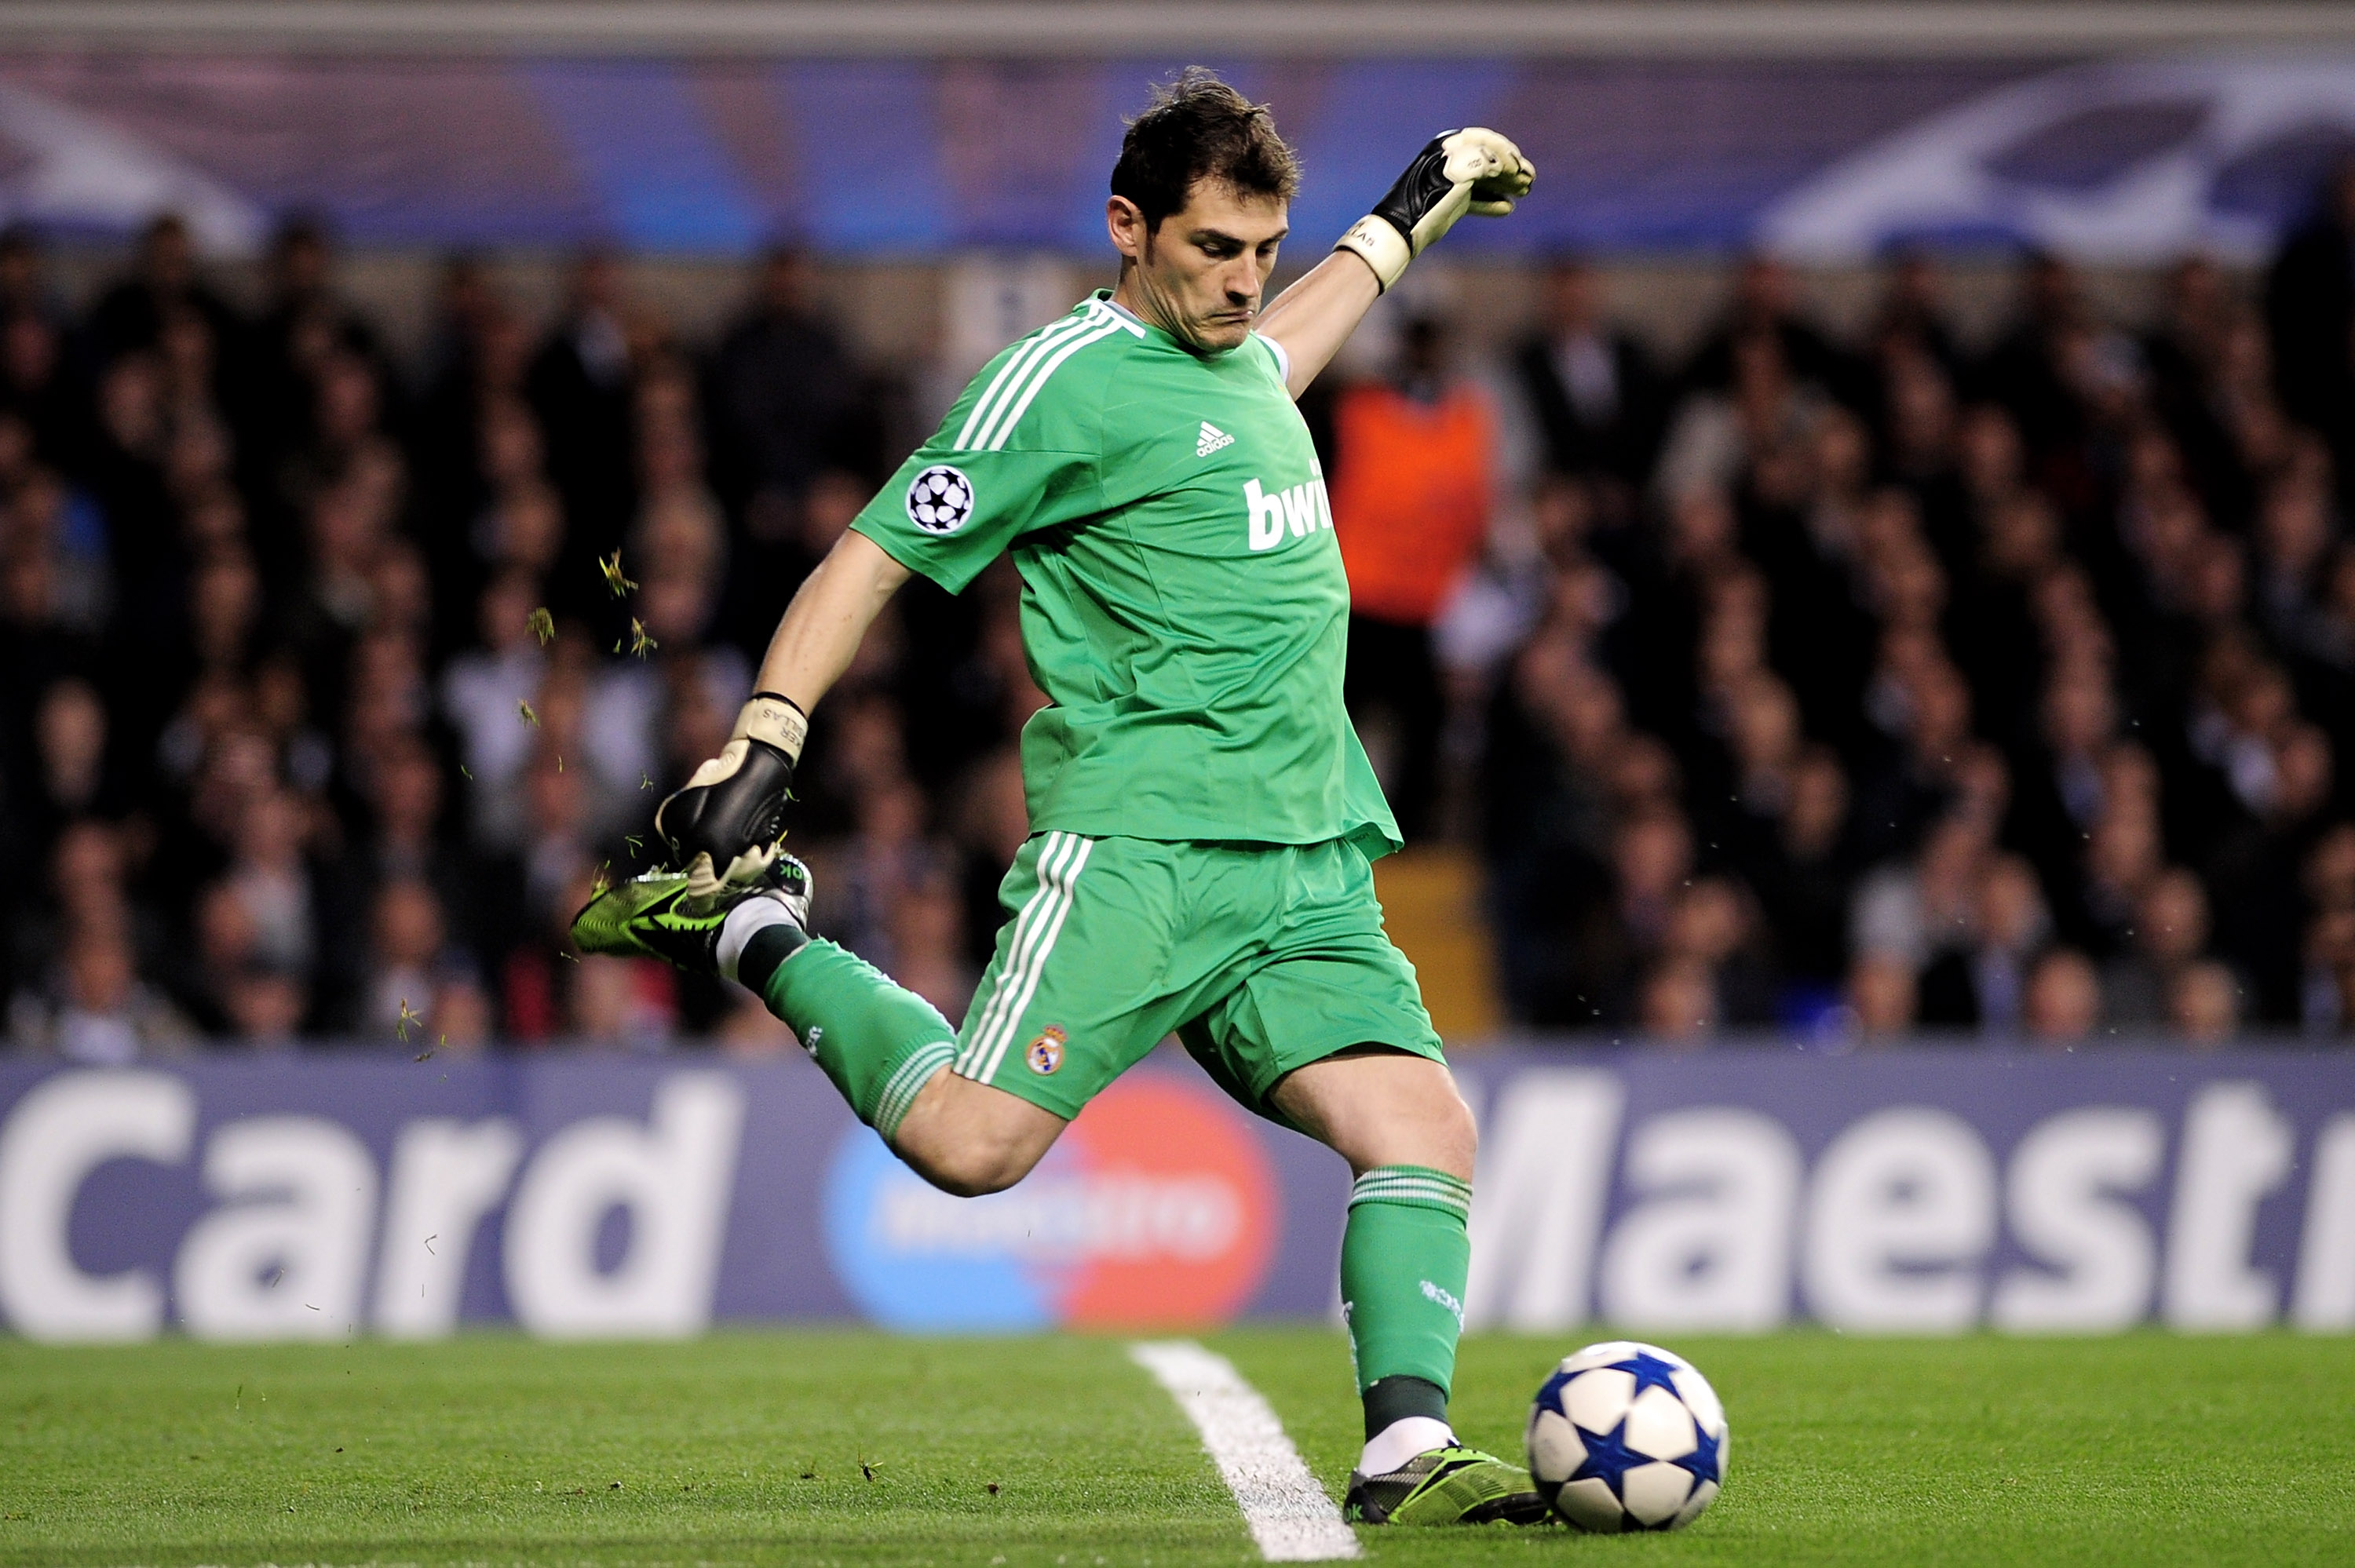 LONDON, ENGLAND - APRIL 13:  Iker Casillas of Real Madrid kicks the ball during the UEFA Champions League quarter final second leg match between Tottenham Hotspur and Real Madrid at White Hart Lane on April 13, 2011 in London, England.  (Photo by Shaun Bo